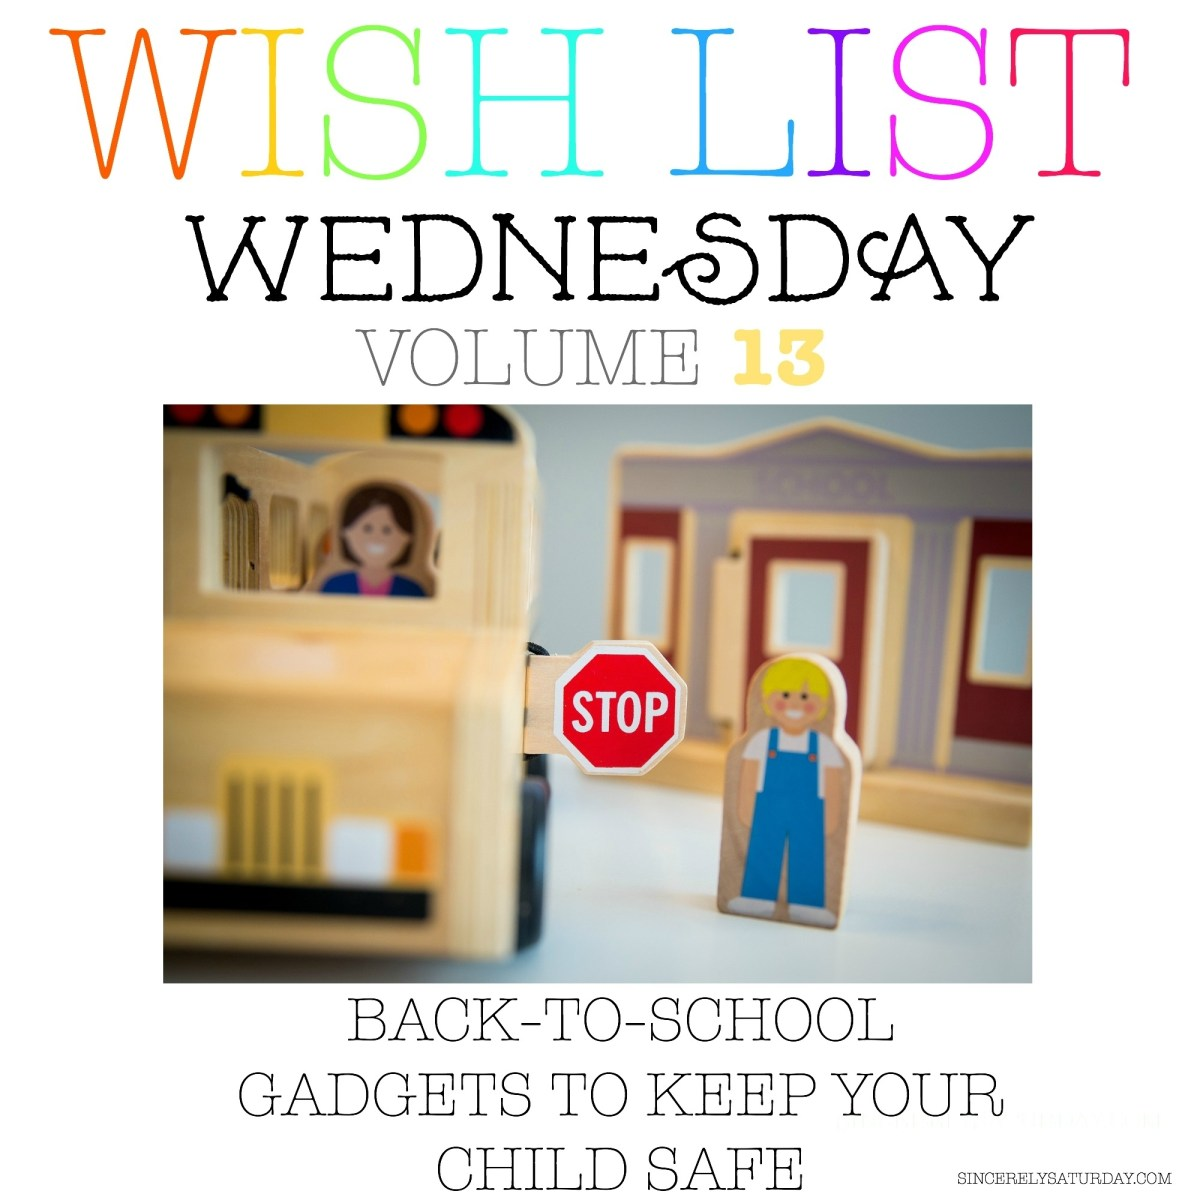 BACK-TO-SCHOOL GADGETS TO KEEP YOUR CHILD SAFE